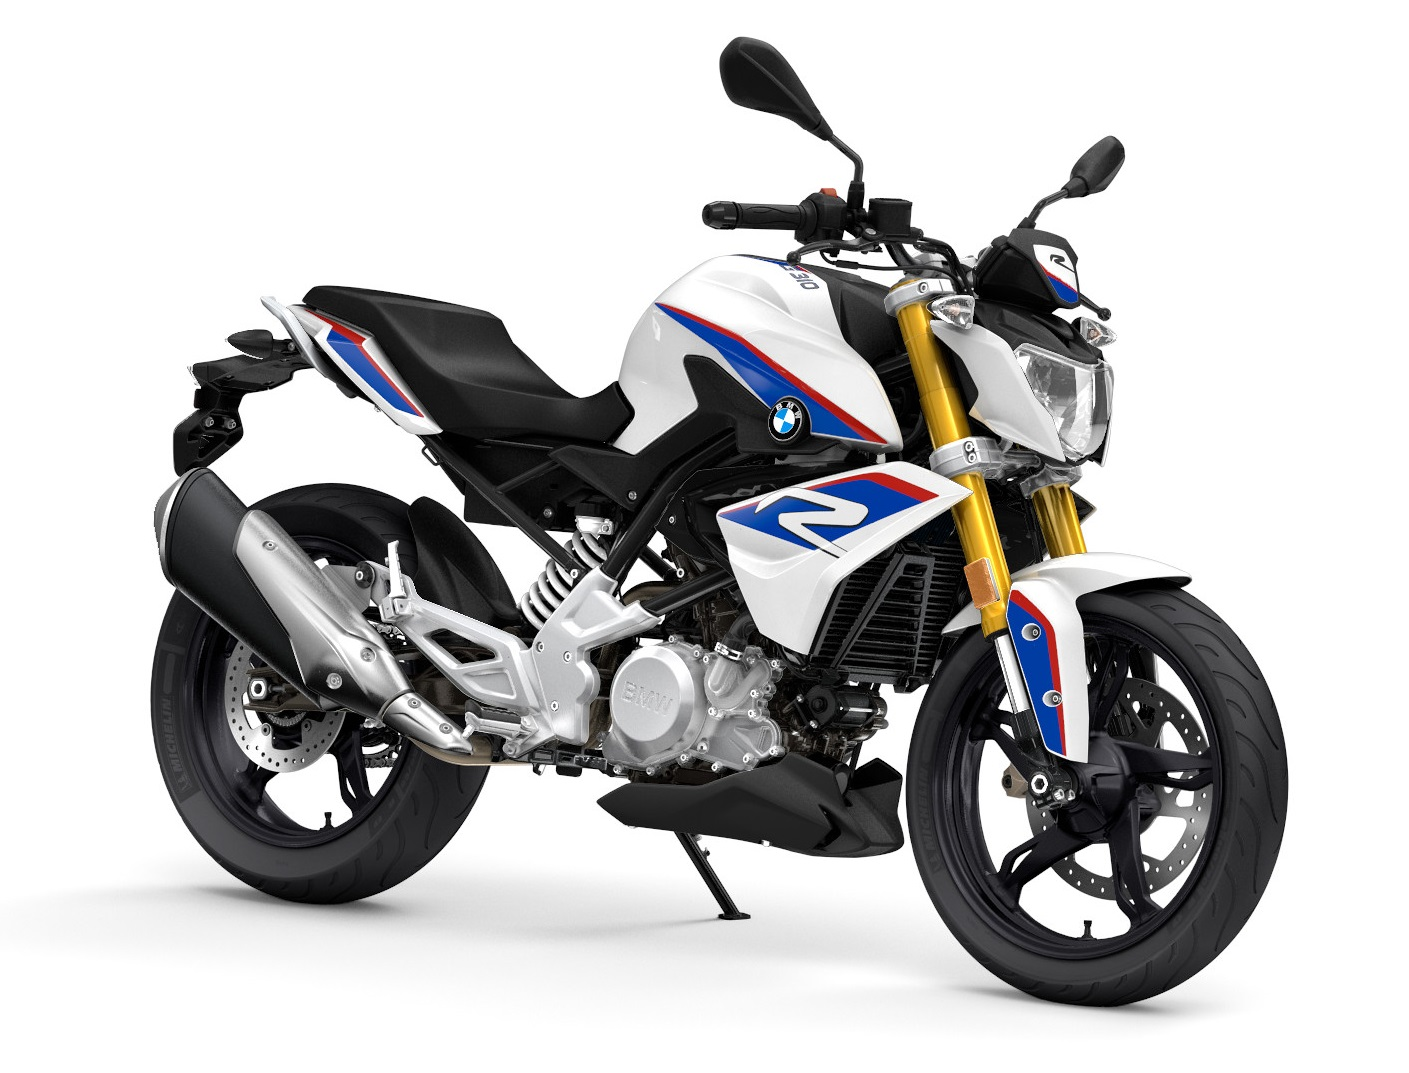 bmw g310r price why it should be under duke 390 reasons. Black Bedroom Furniture Sets. Home Design Ideas